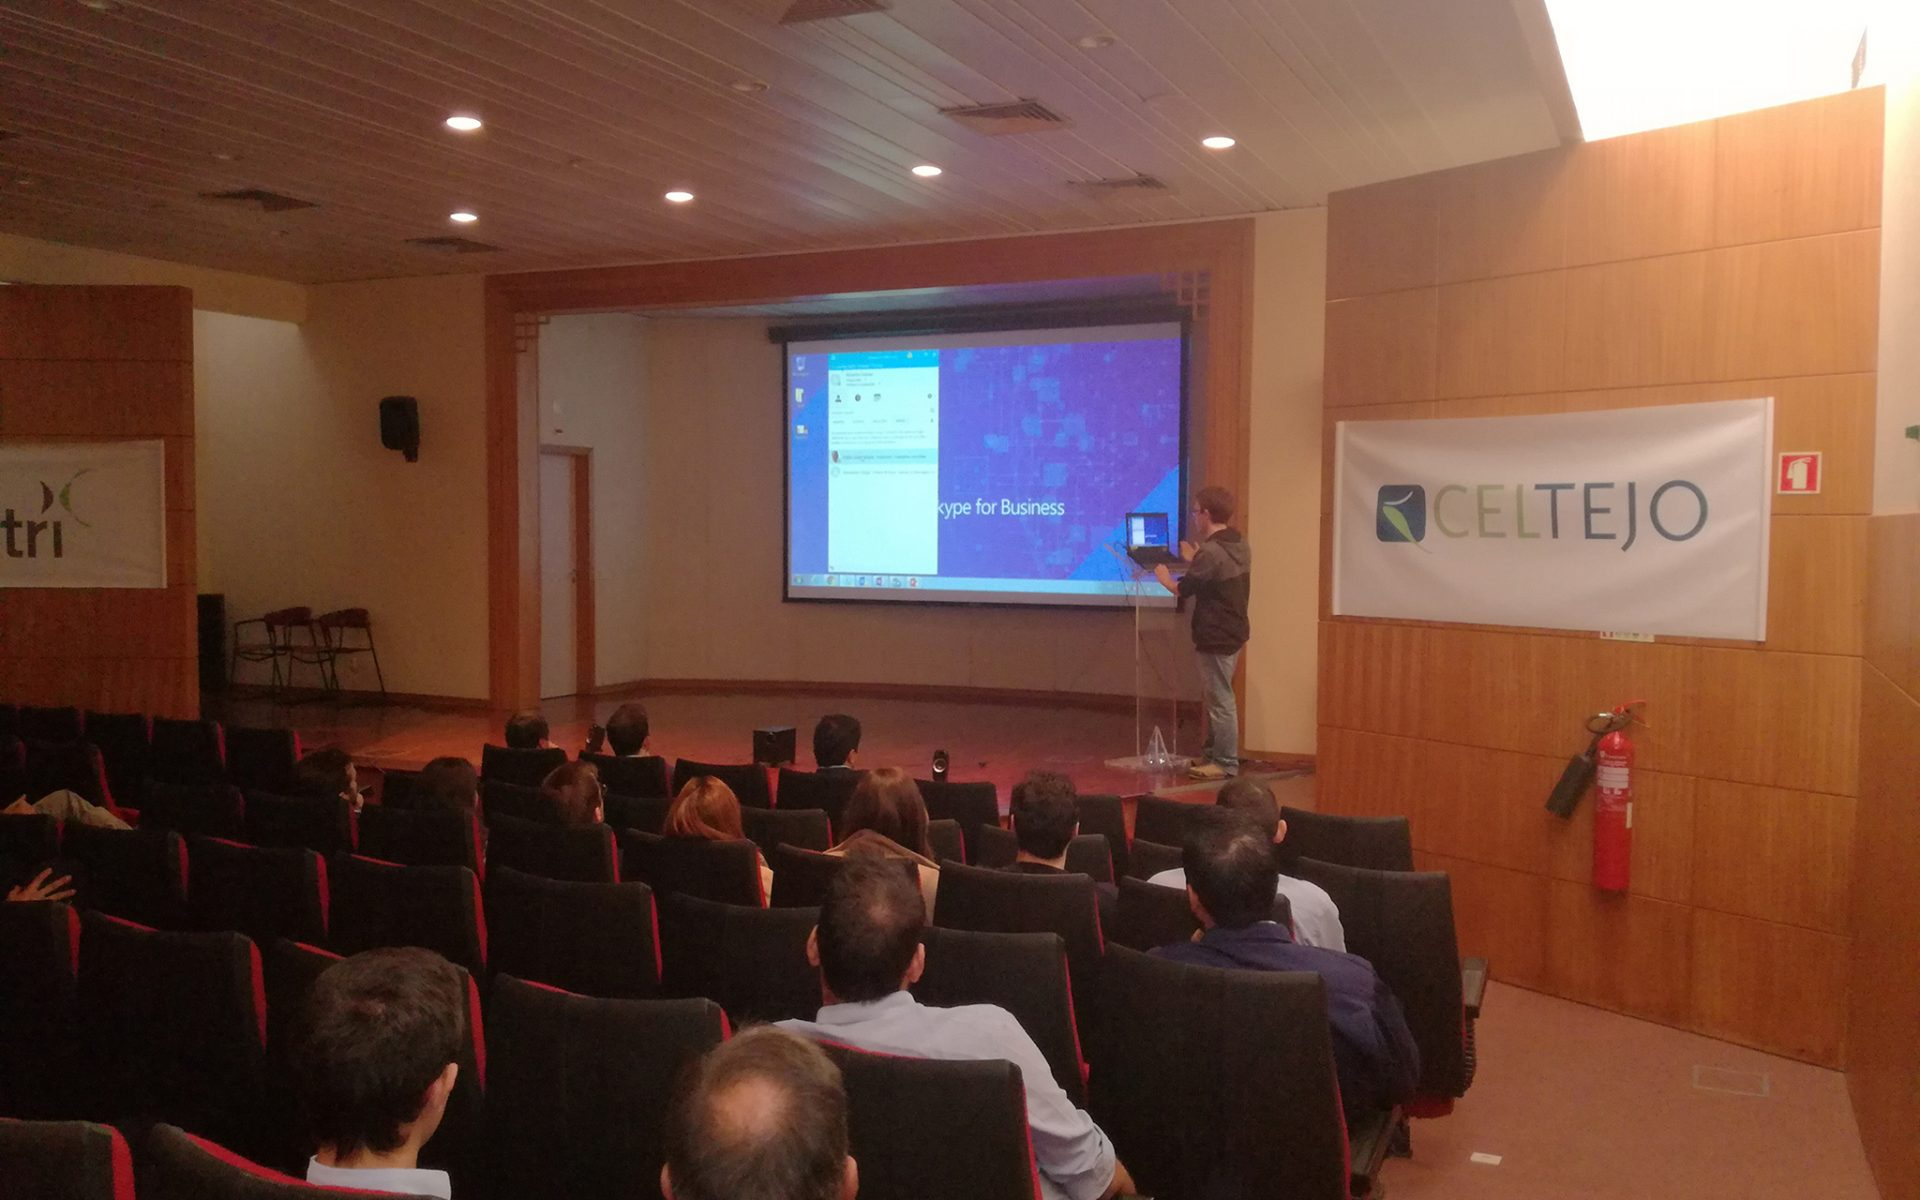 Celtejo's next Technical Meeting takes place in September